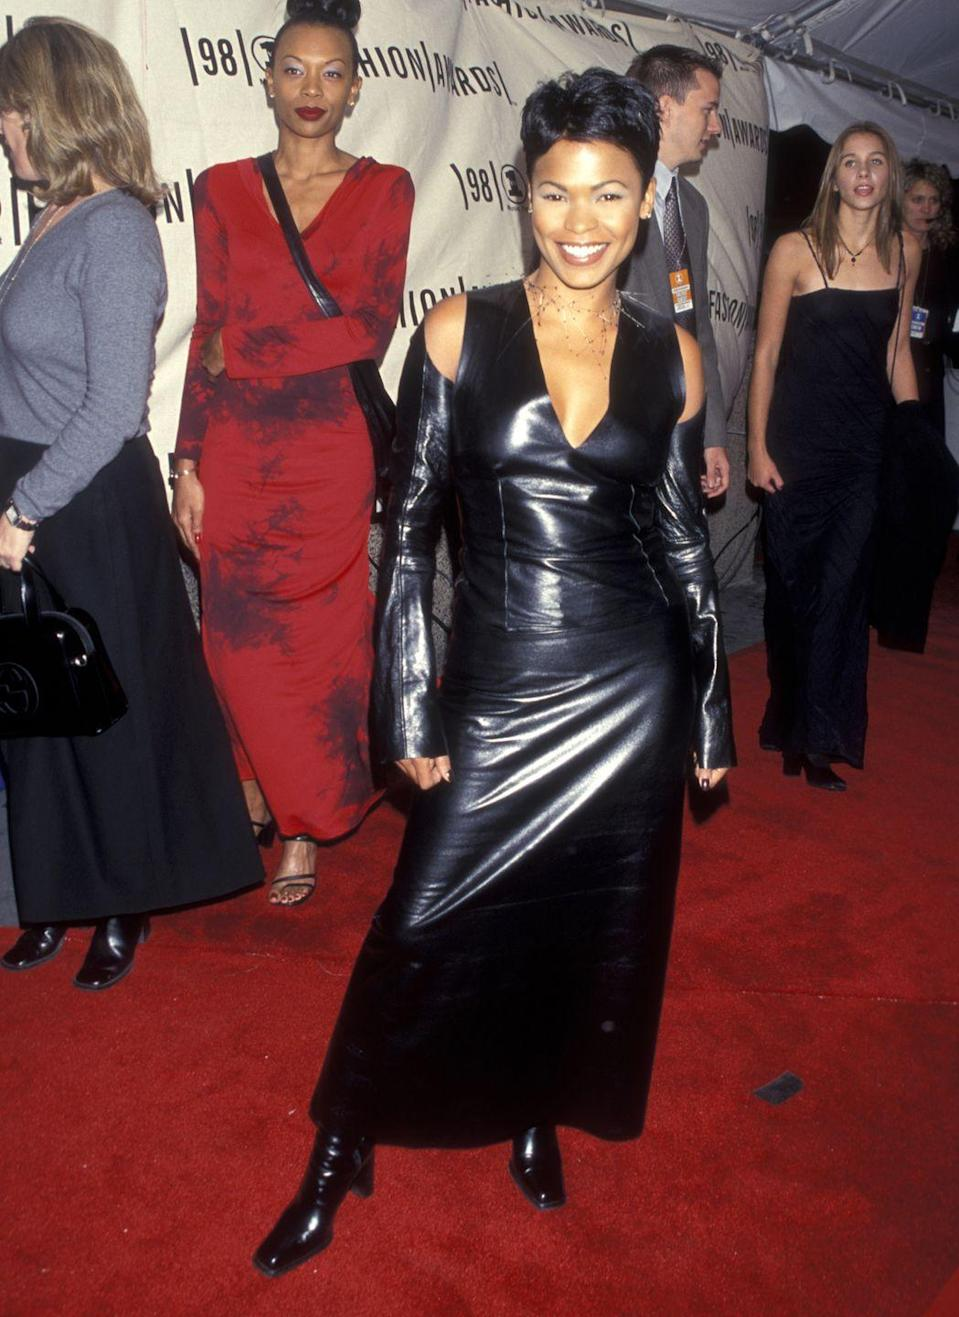 <p>At the VH1 Fashion Awards, the <em>Fresh Prince of Bel-Air </em>actress wore this edgy leather dress with cold-shoulder cutouts and a deep V-neck. </p>